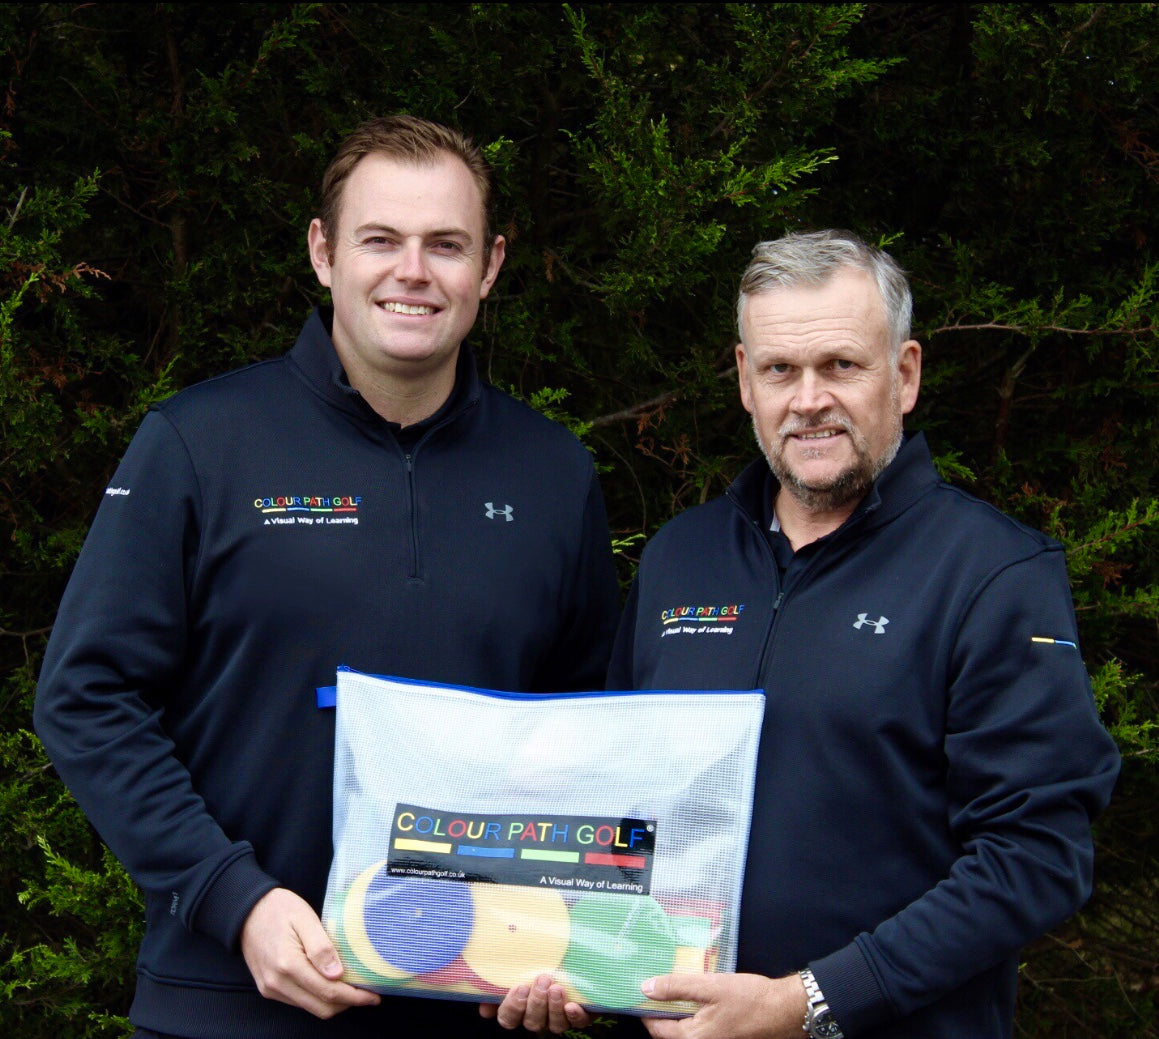 Colour Path Golf Founders